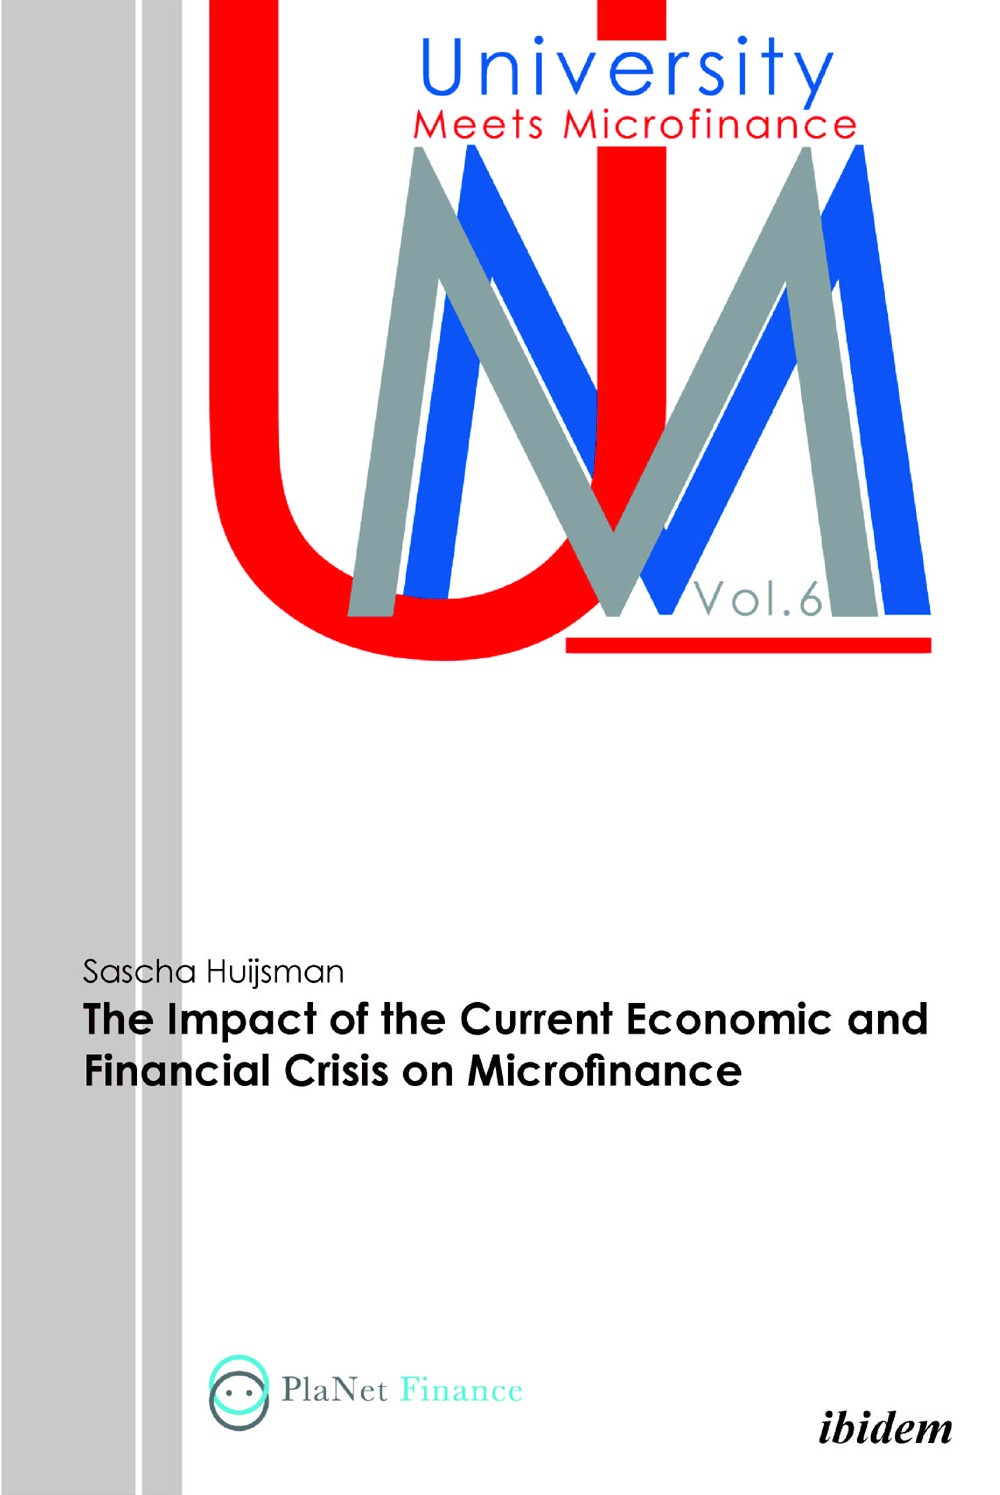 The Impact of the Current Economic and Financial Crisis on Microfinance